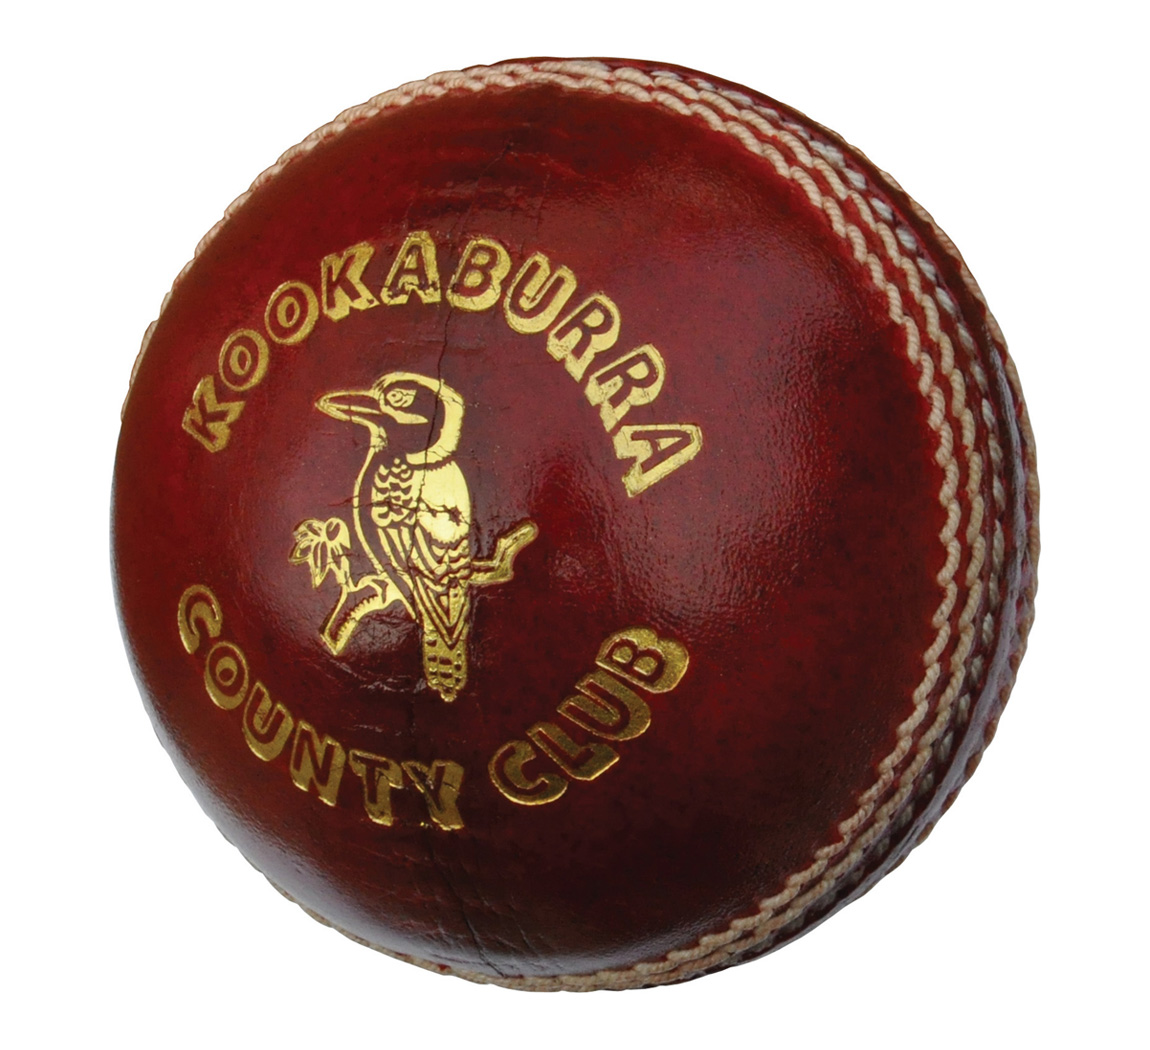 Cricket Ball Png image #28901